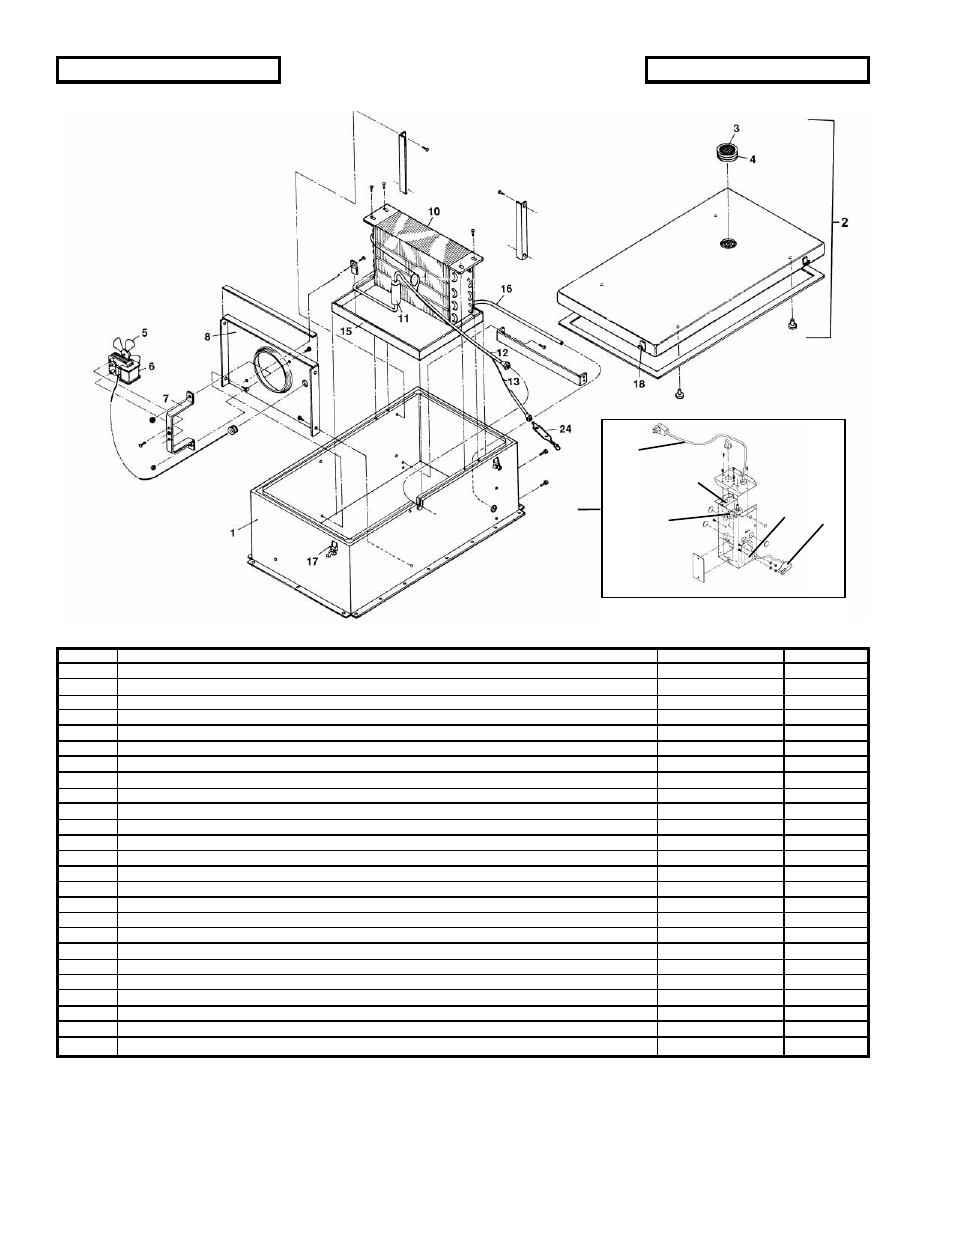 whirlpool refrigerator wiring schematic figure 6-3 one section refrigerator components, electrical ...